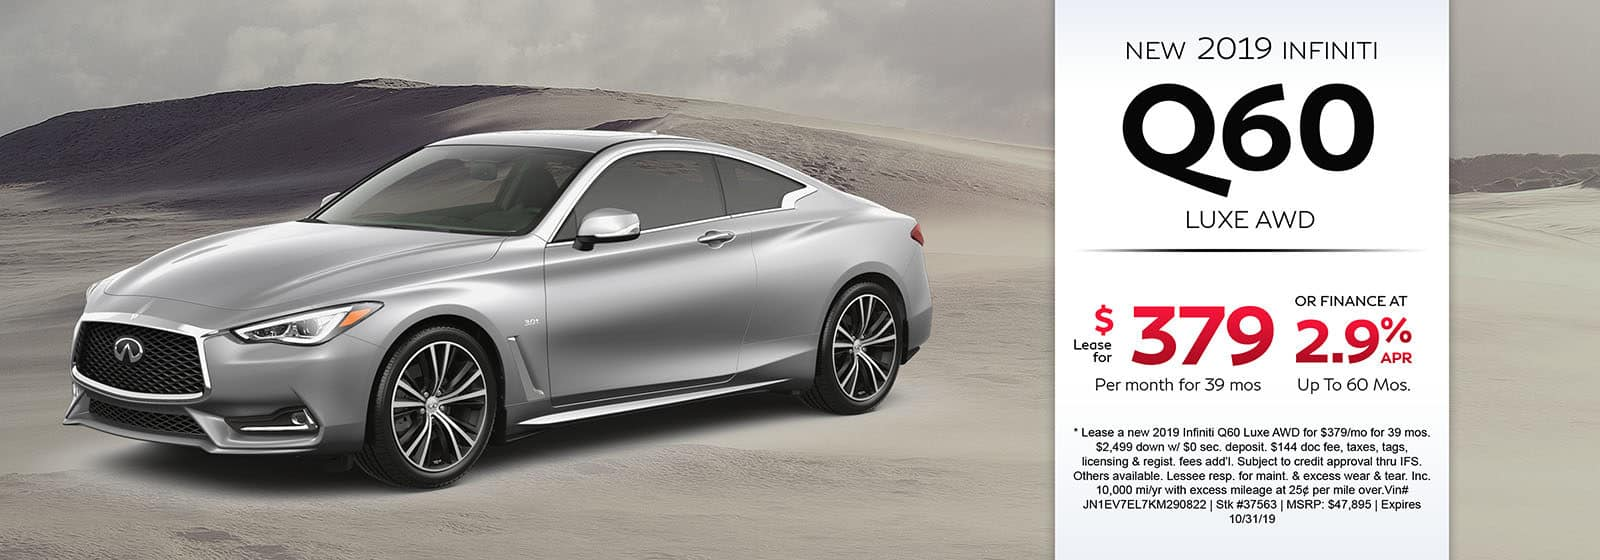 Lease a new 2019 INFINITI Q60 Luxe AWD for $379 a month for 39 months. Or get special 2.9% APR financing for up to 60 months